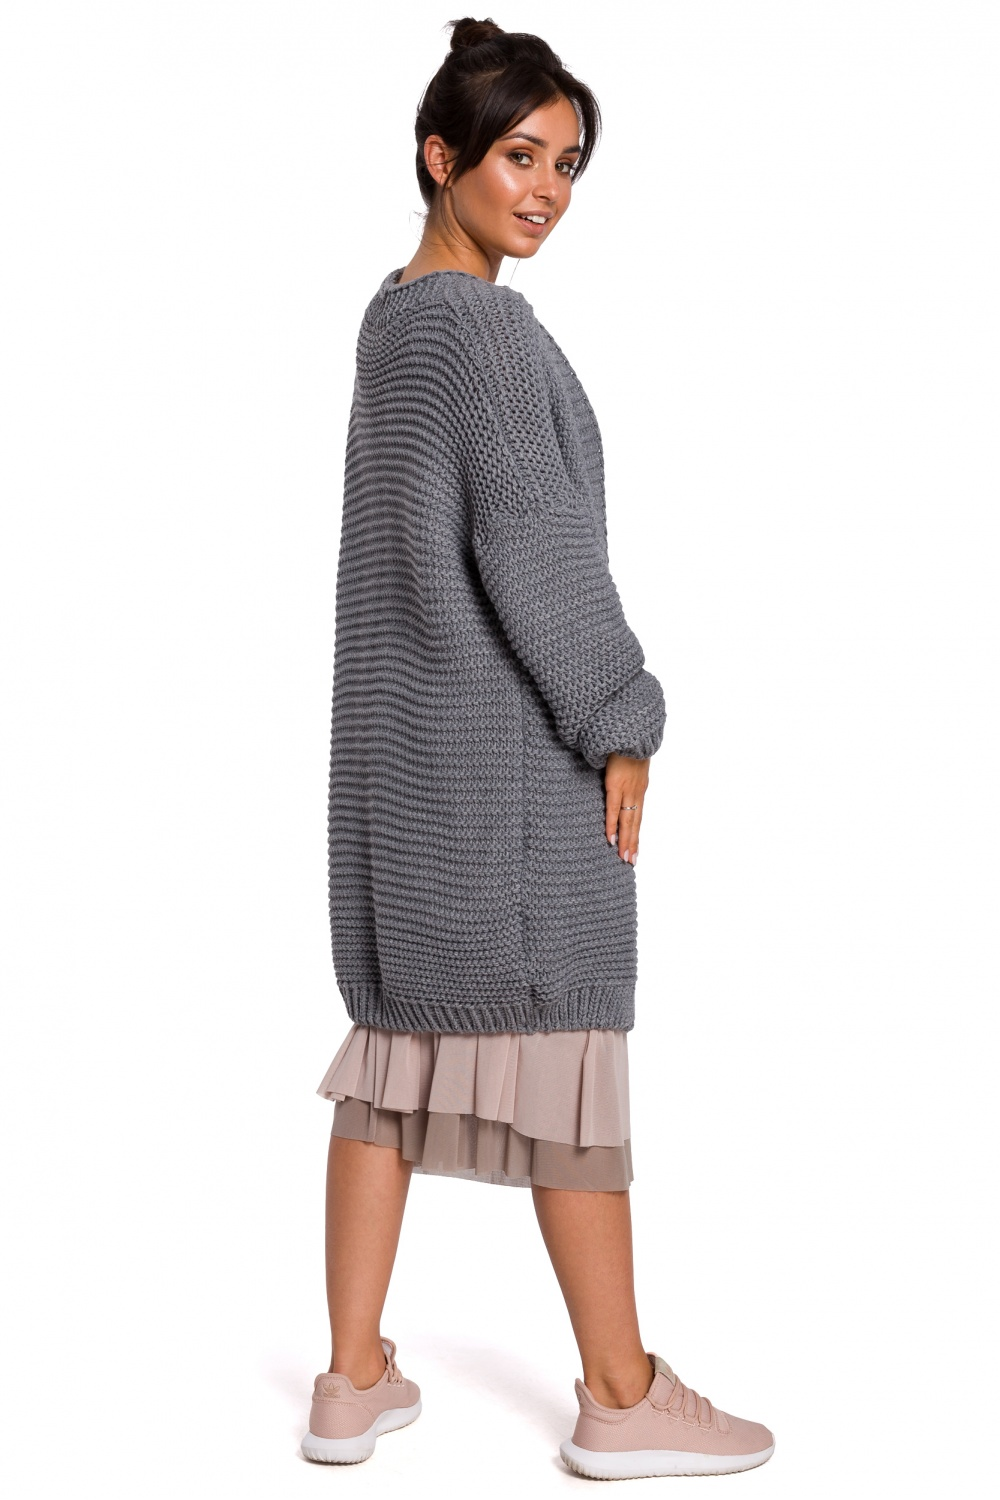 Cardigan model 136427 BE Knit